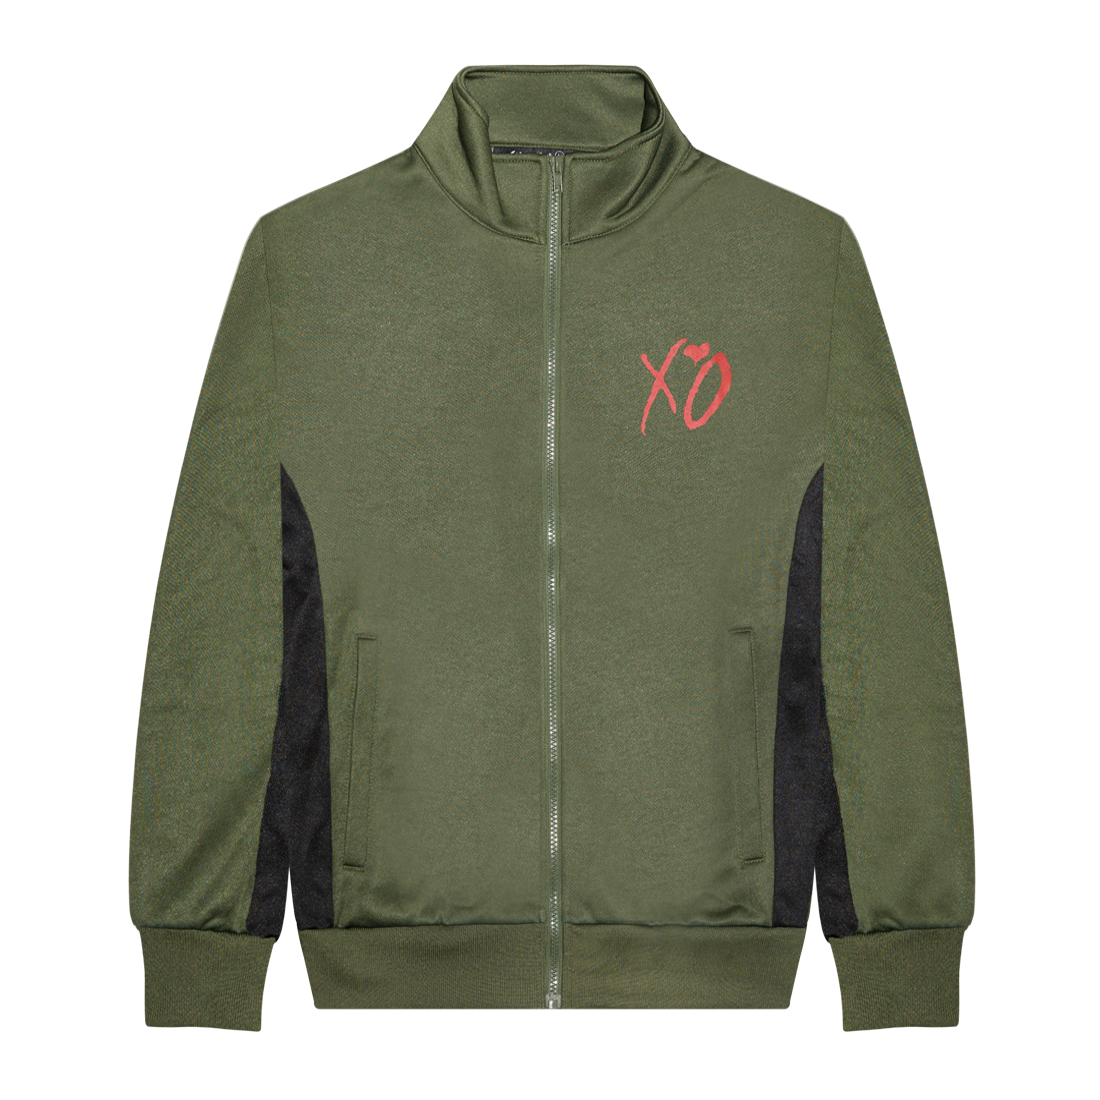 The Weeknd: XO CLASSIC LOGO HEAVYWEIGHT TRACK JACKET - S